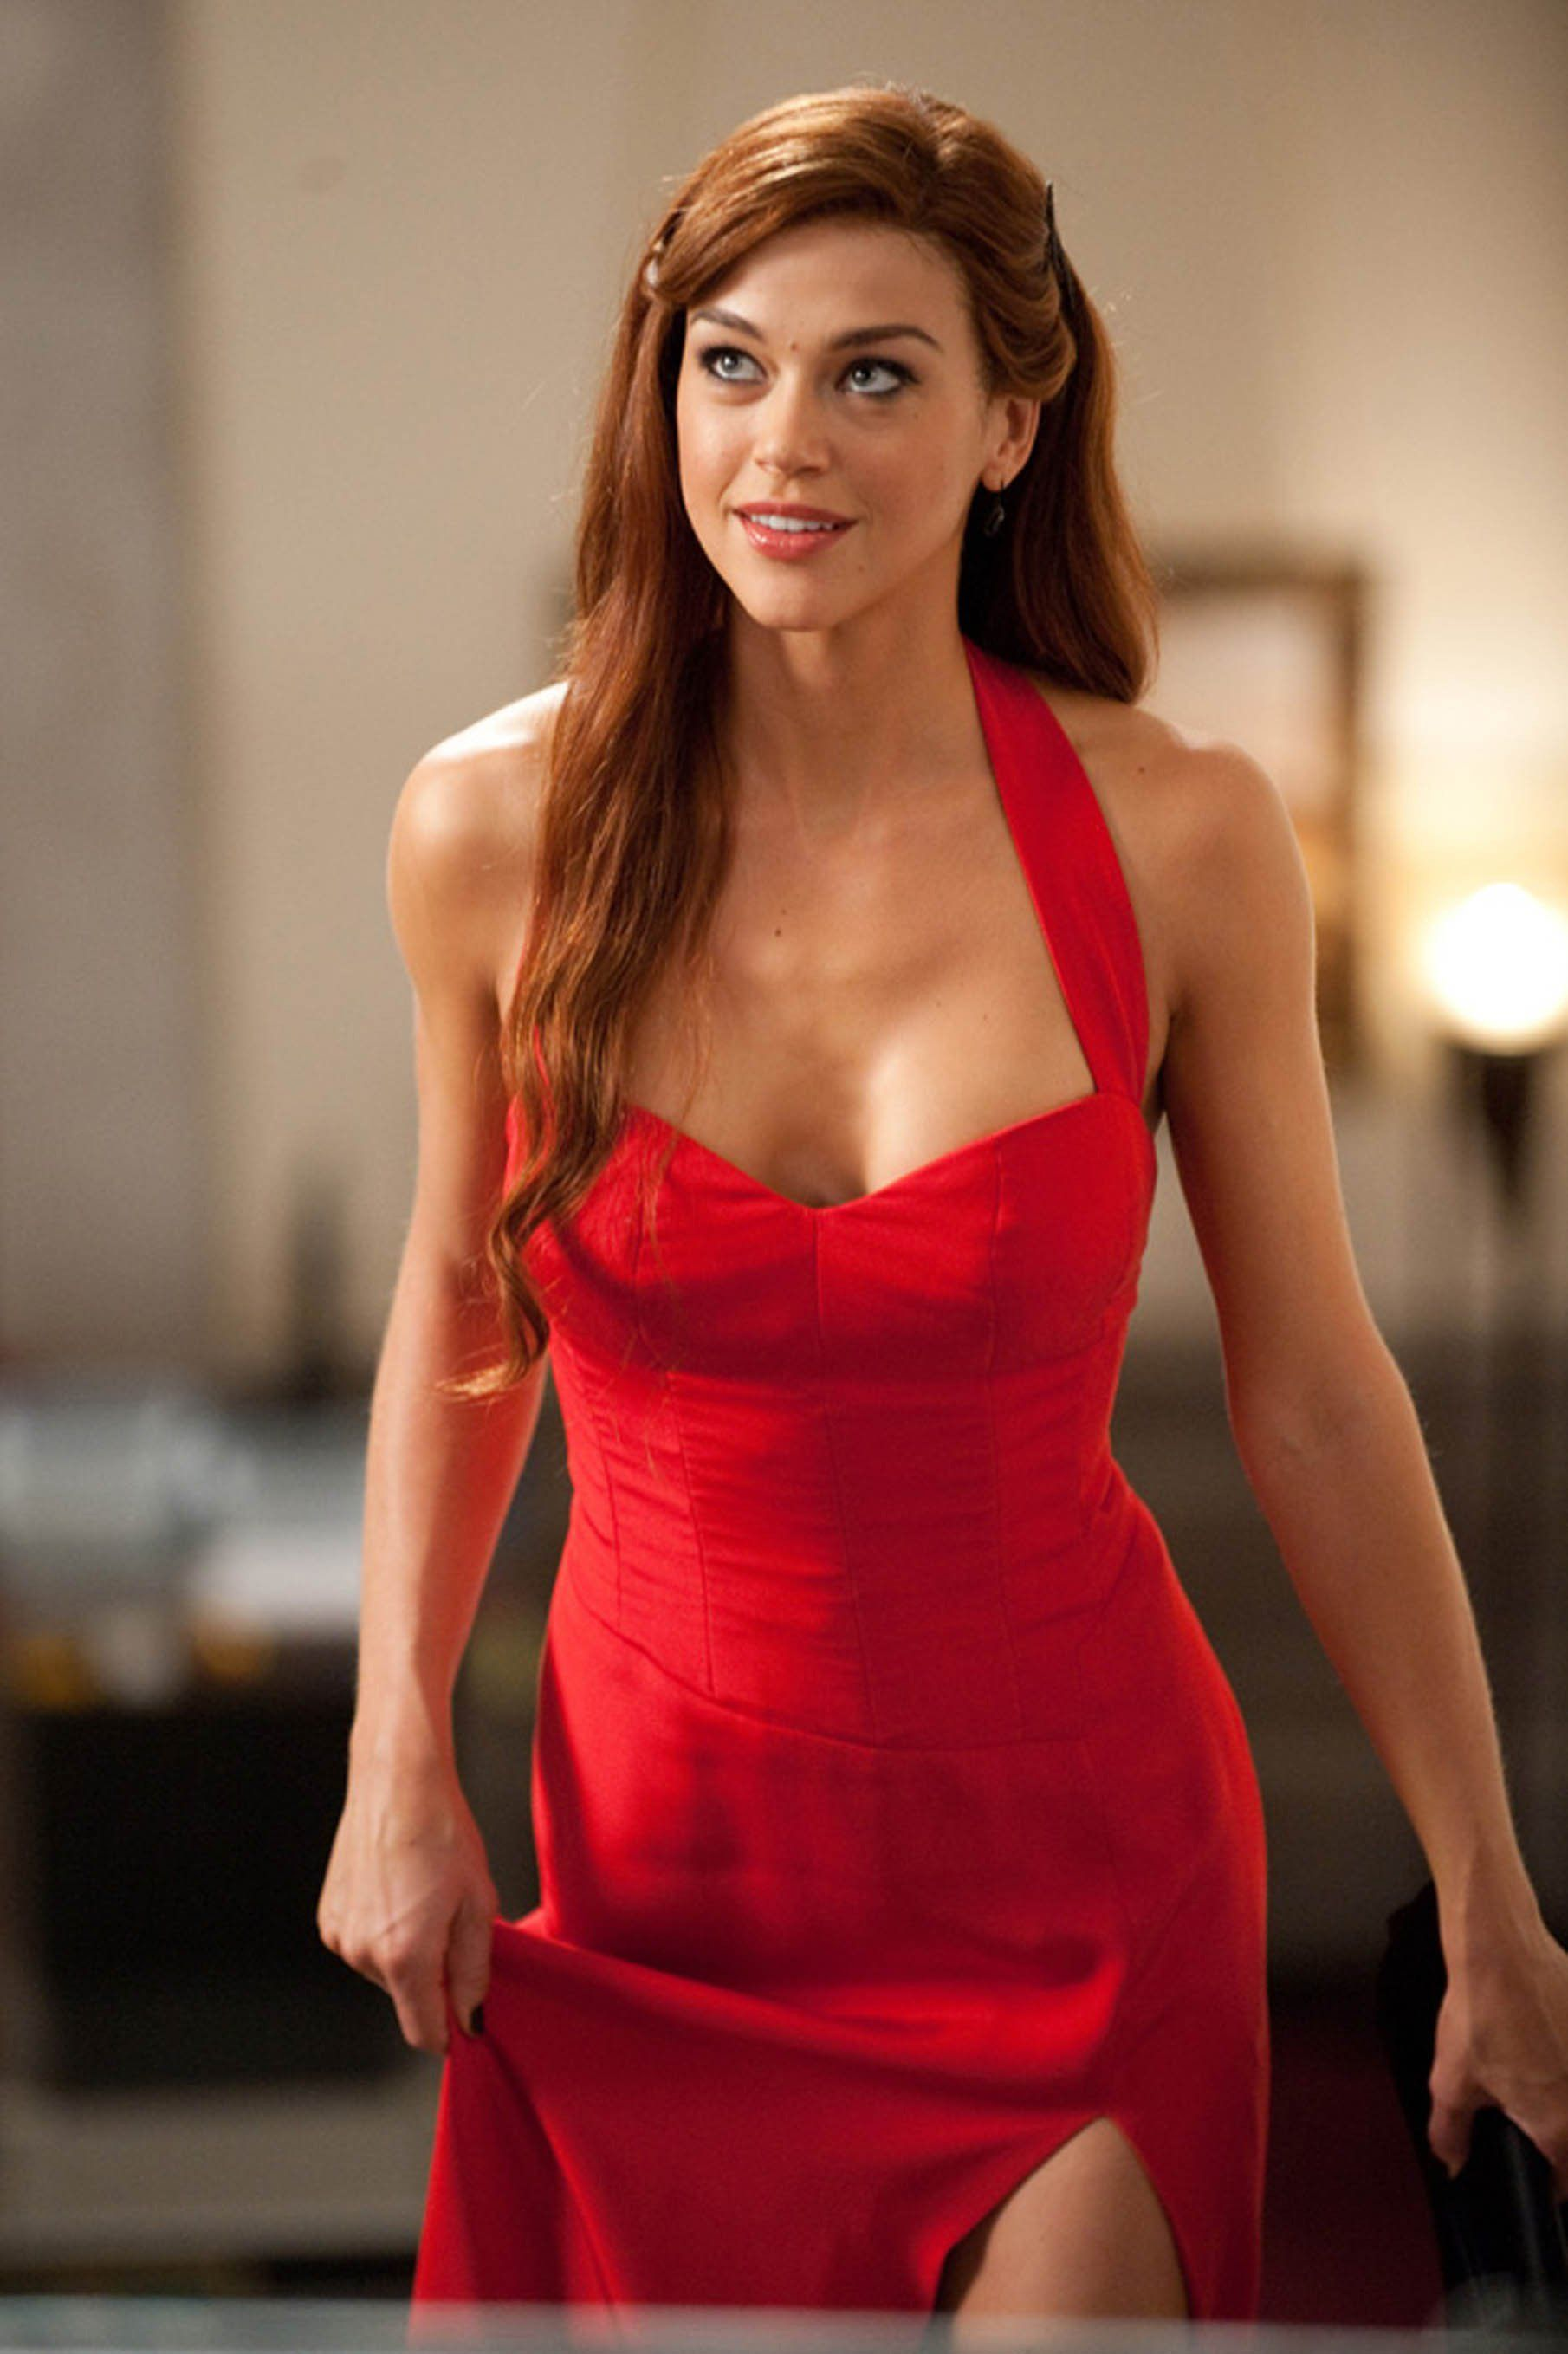 Celebrites Adrianne Palicki nude (65 photos), Pussy, Fappening, Twitter, braless 2006